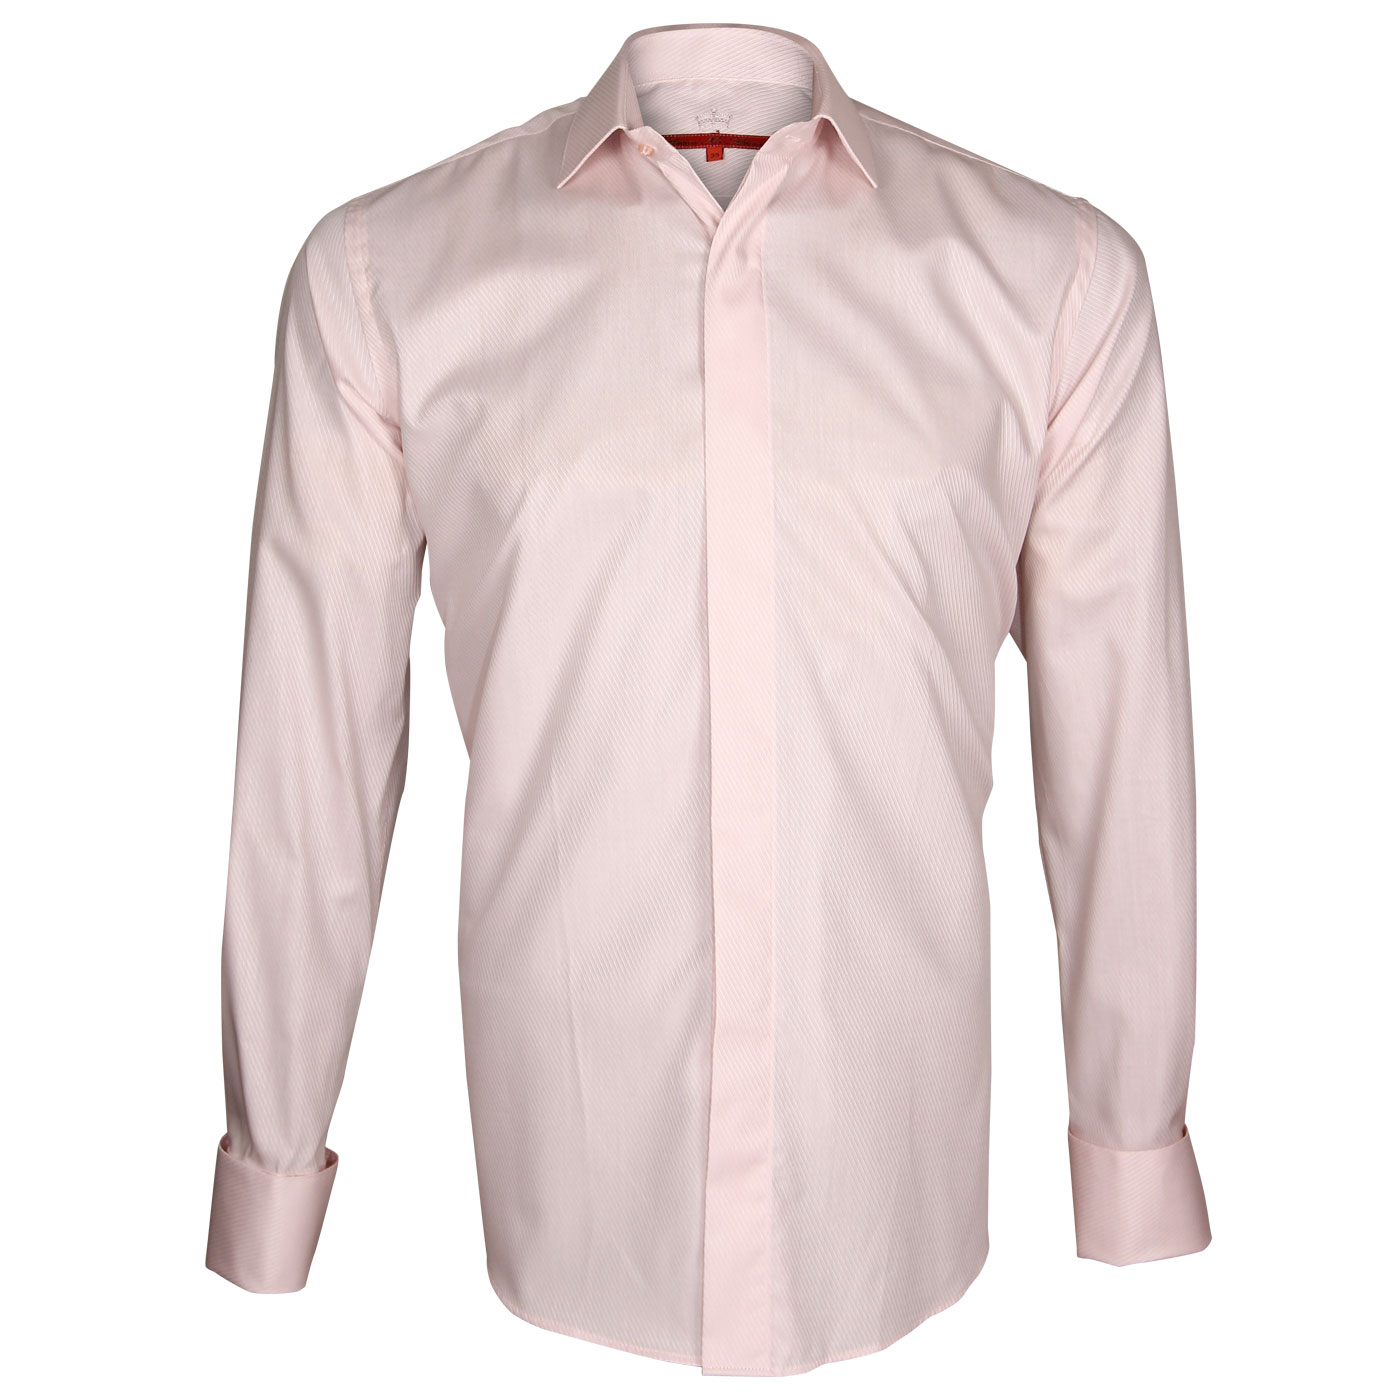 Pink shirt for men, selling shirts on the Internet: Webmenshirts